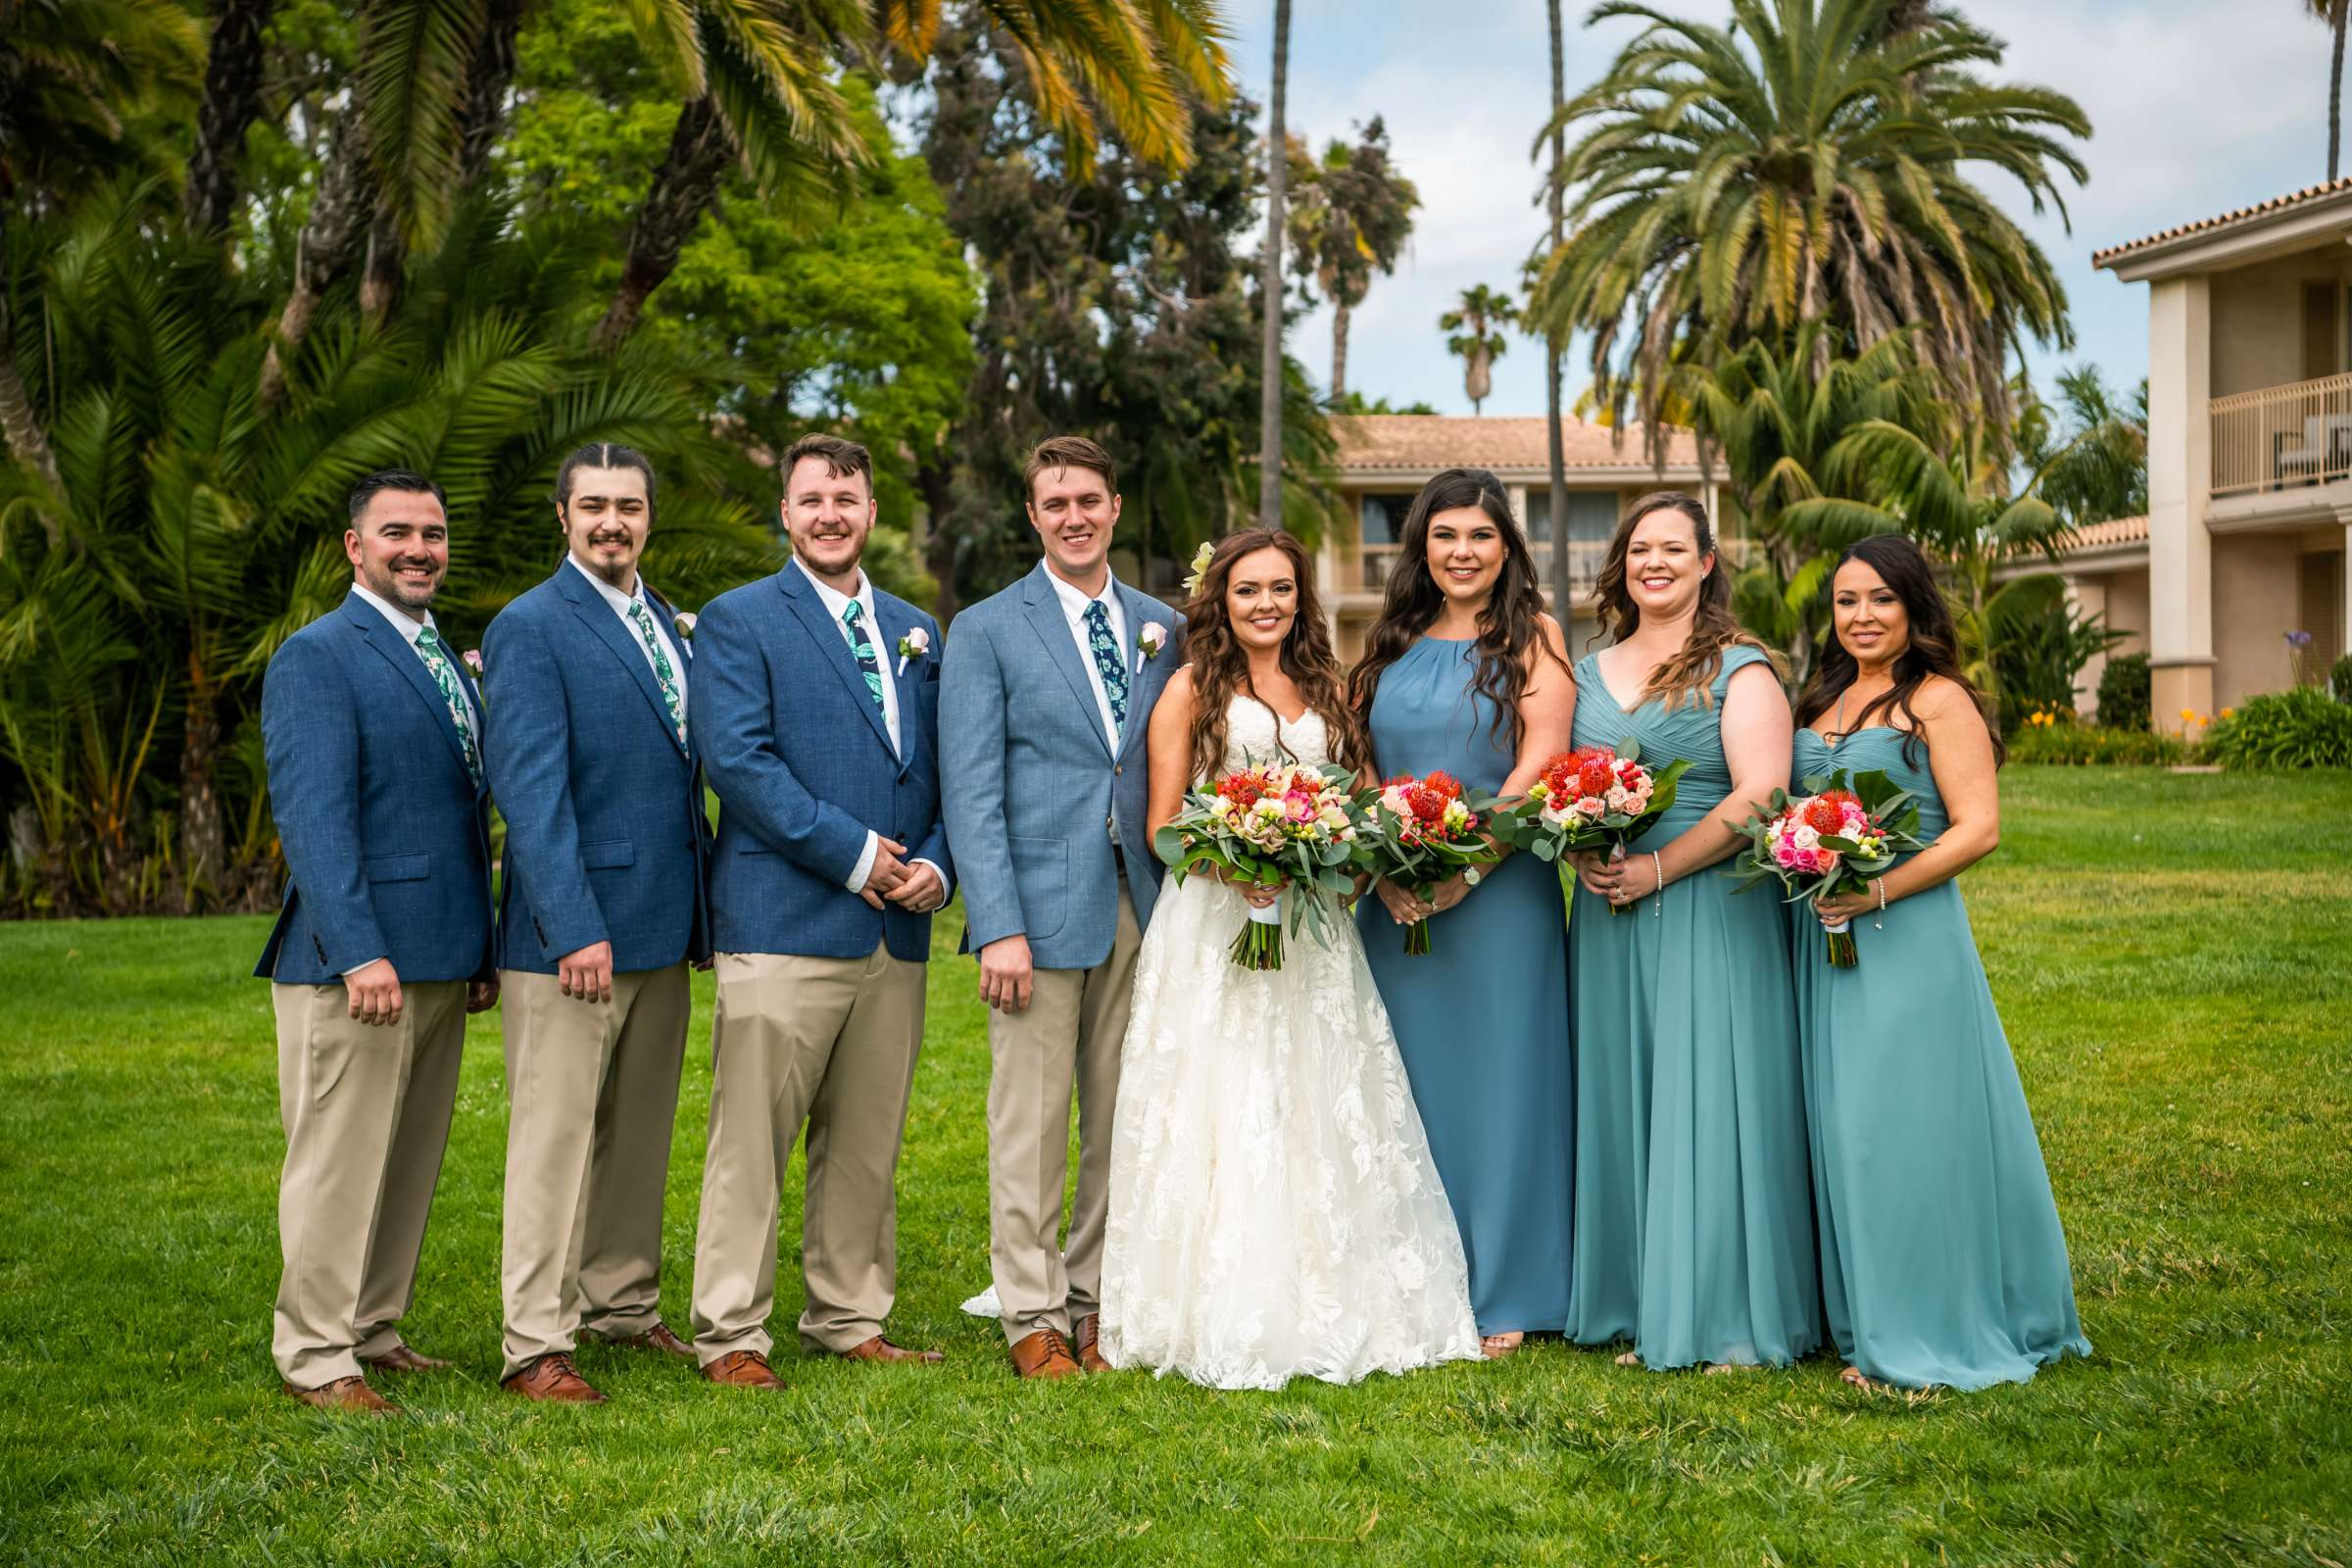 San Diego Mission Bay Resort Wedding coordinated by Cafe Au Love, Lauren and Adam Wedding Photo #87 by True Photography